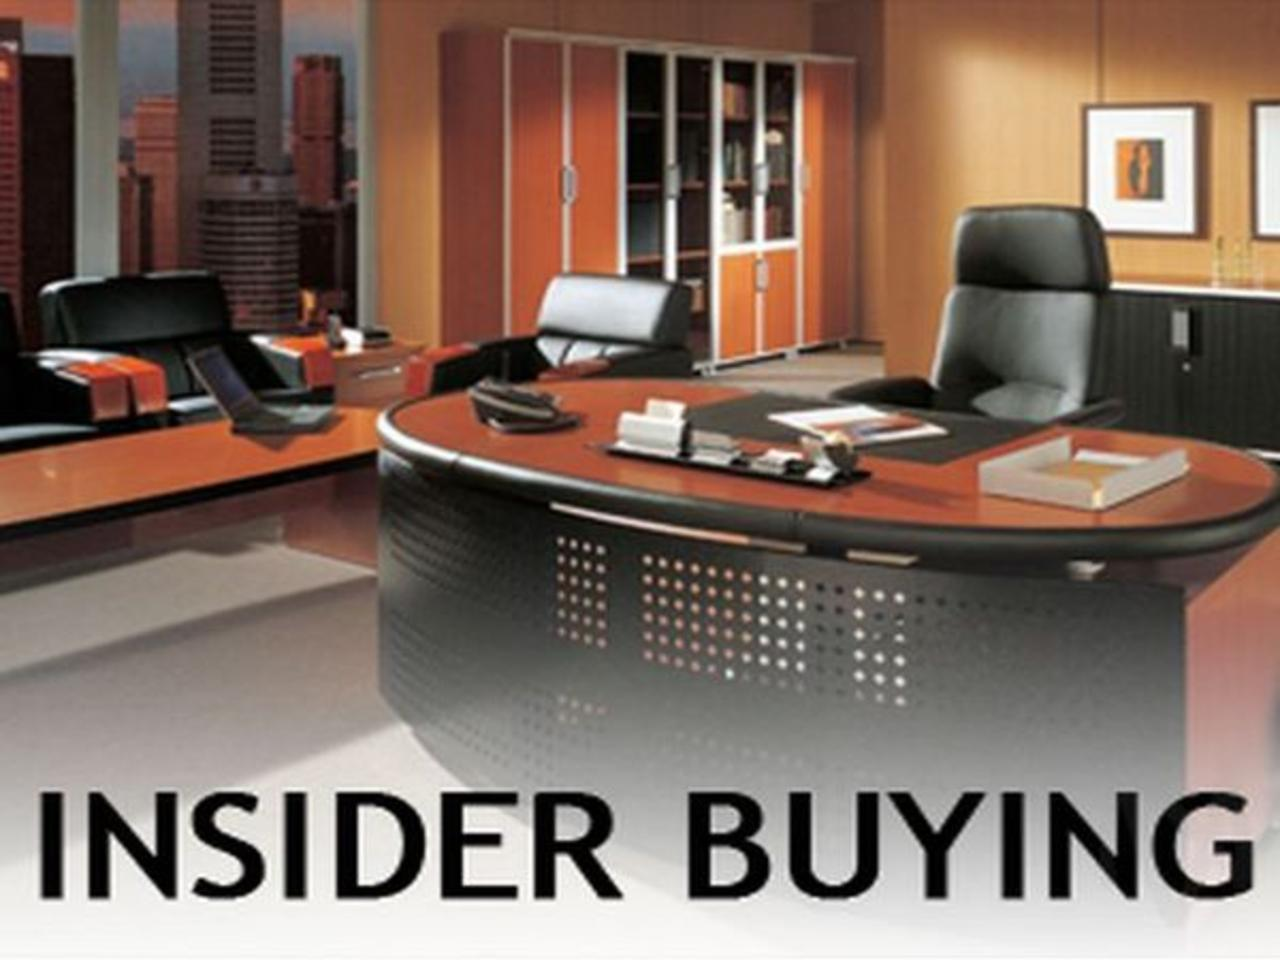 Thursday 4/22 Insider Buying Report: AGL, TSP